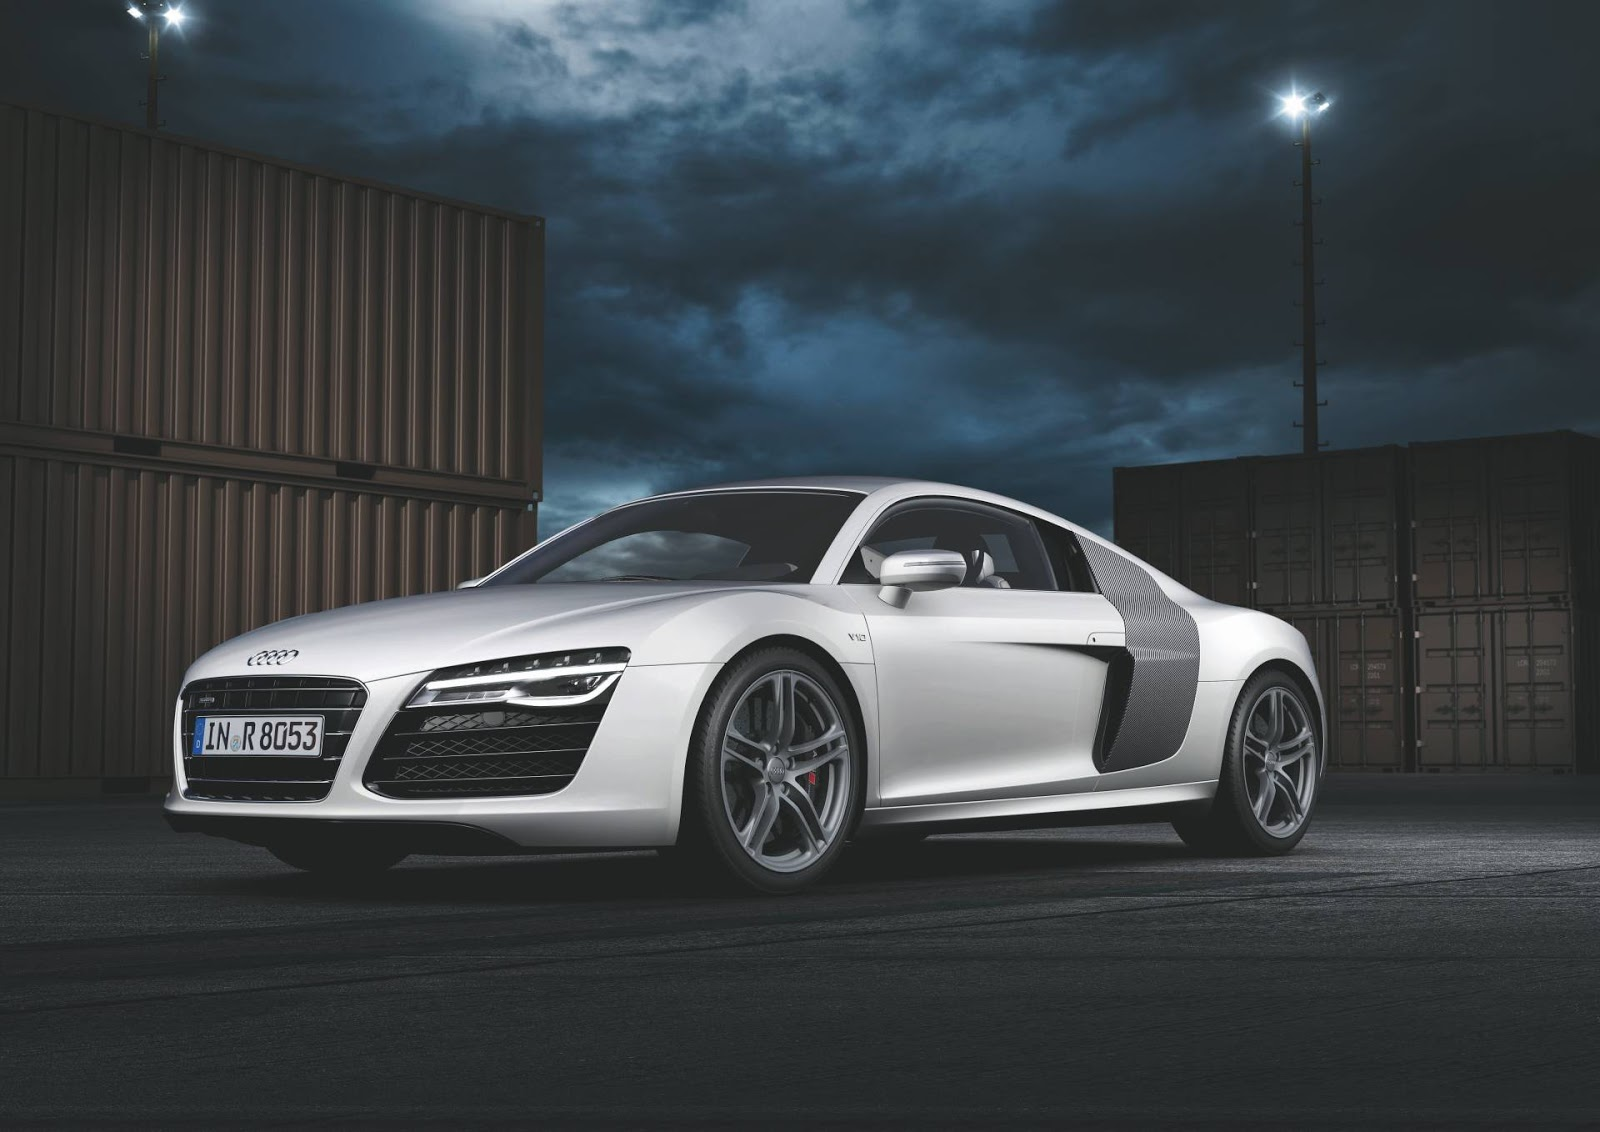 audi r8 v10 coupe 2013 hottest car wallpapers bestgarage. Black Bedroom Furniture Sets. Home Design Ideas